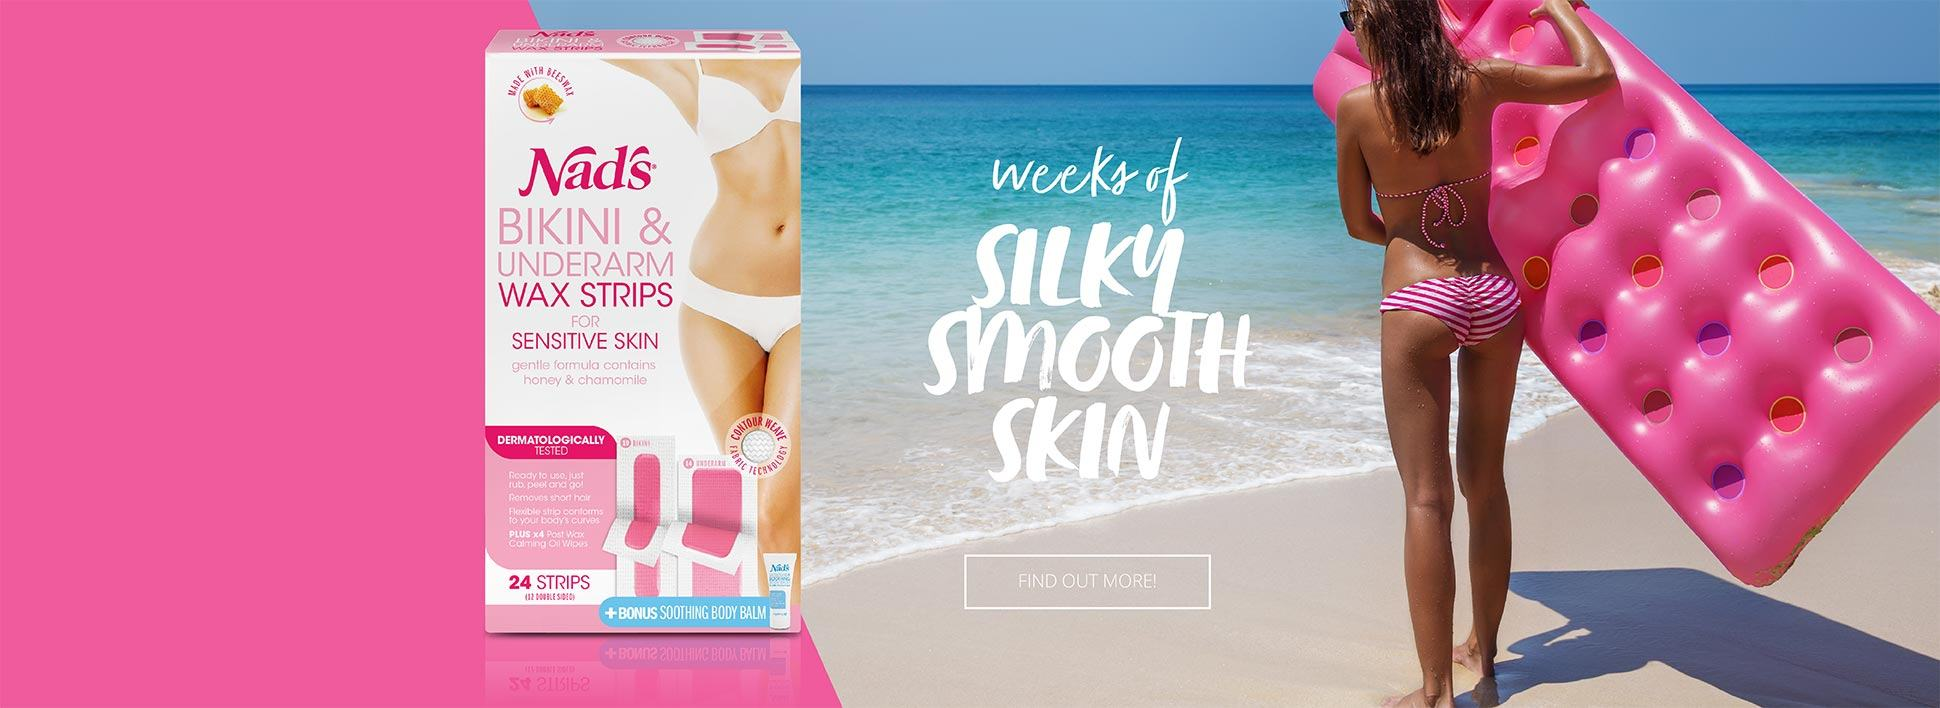 Nad's Bikini Underarm Wax Strips - Weeks of Silky Smooth Skin